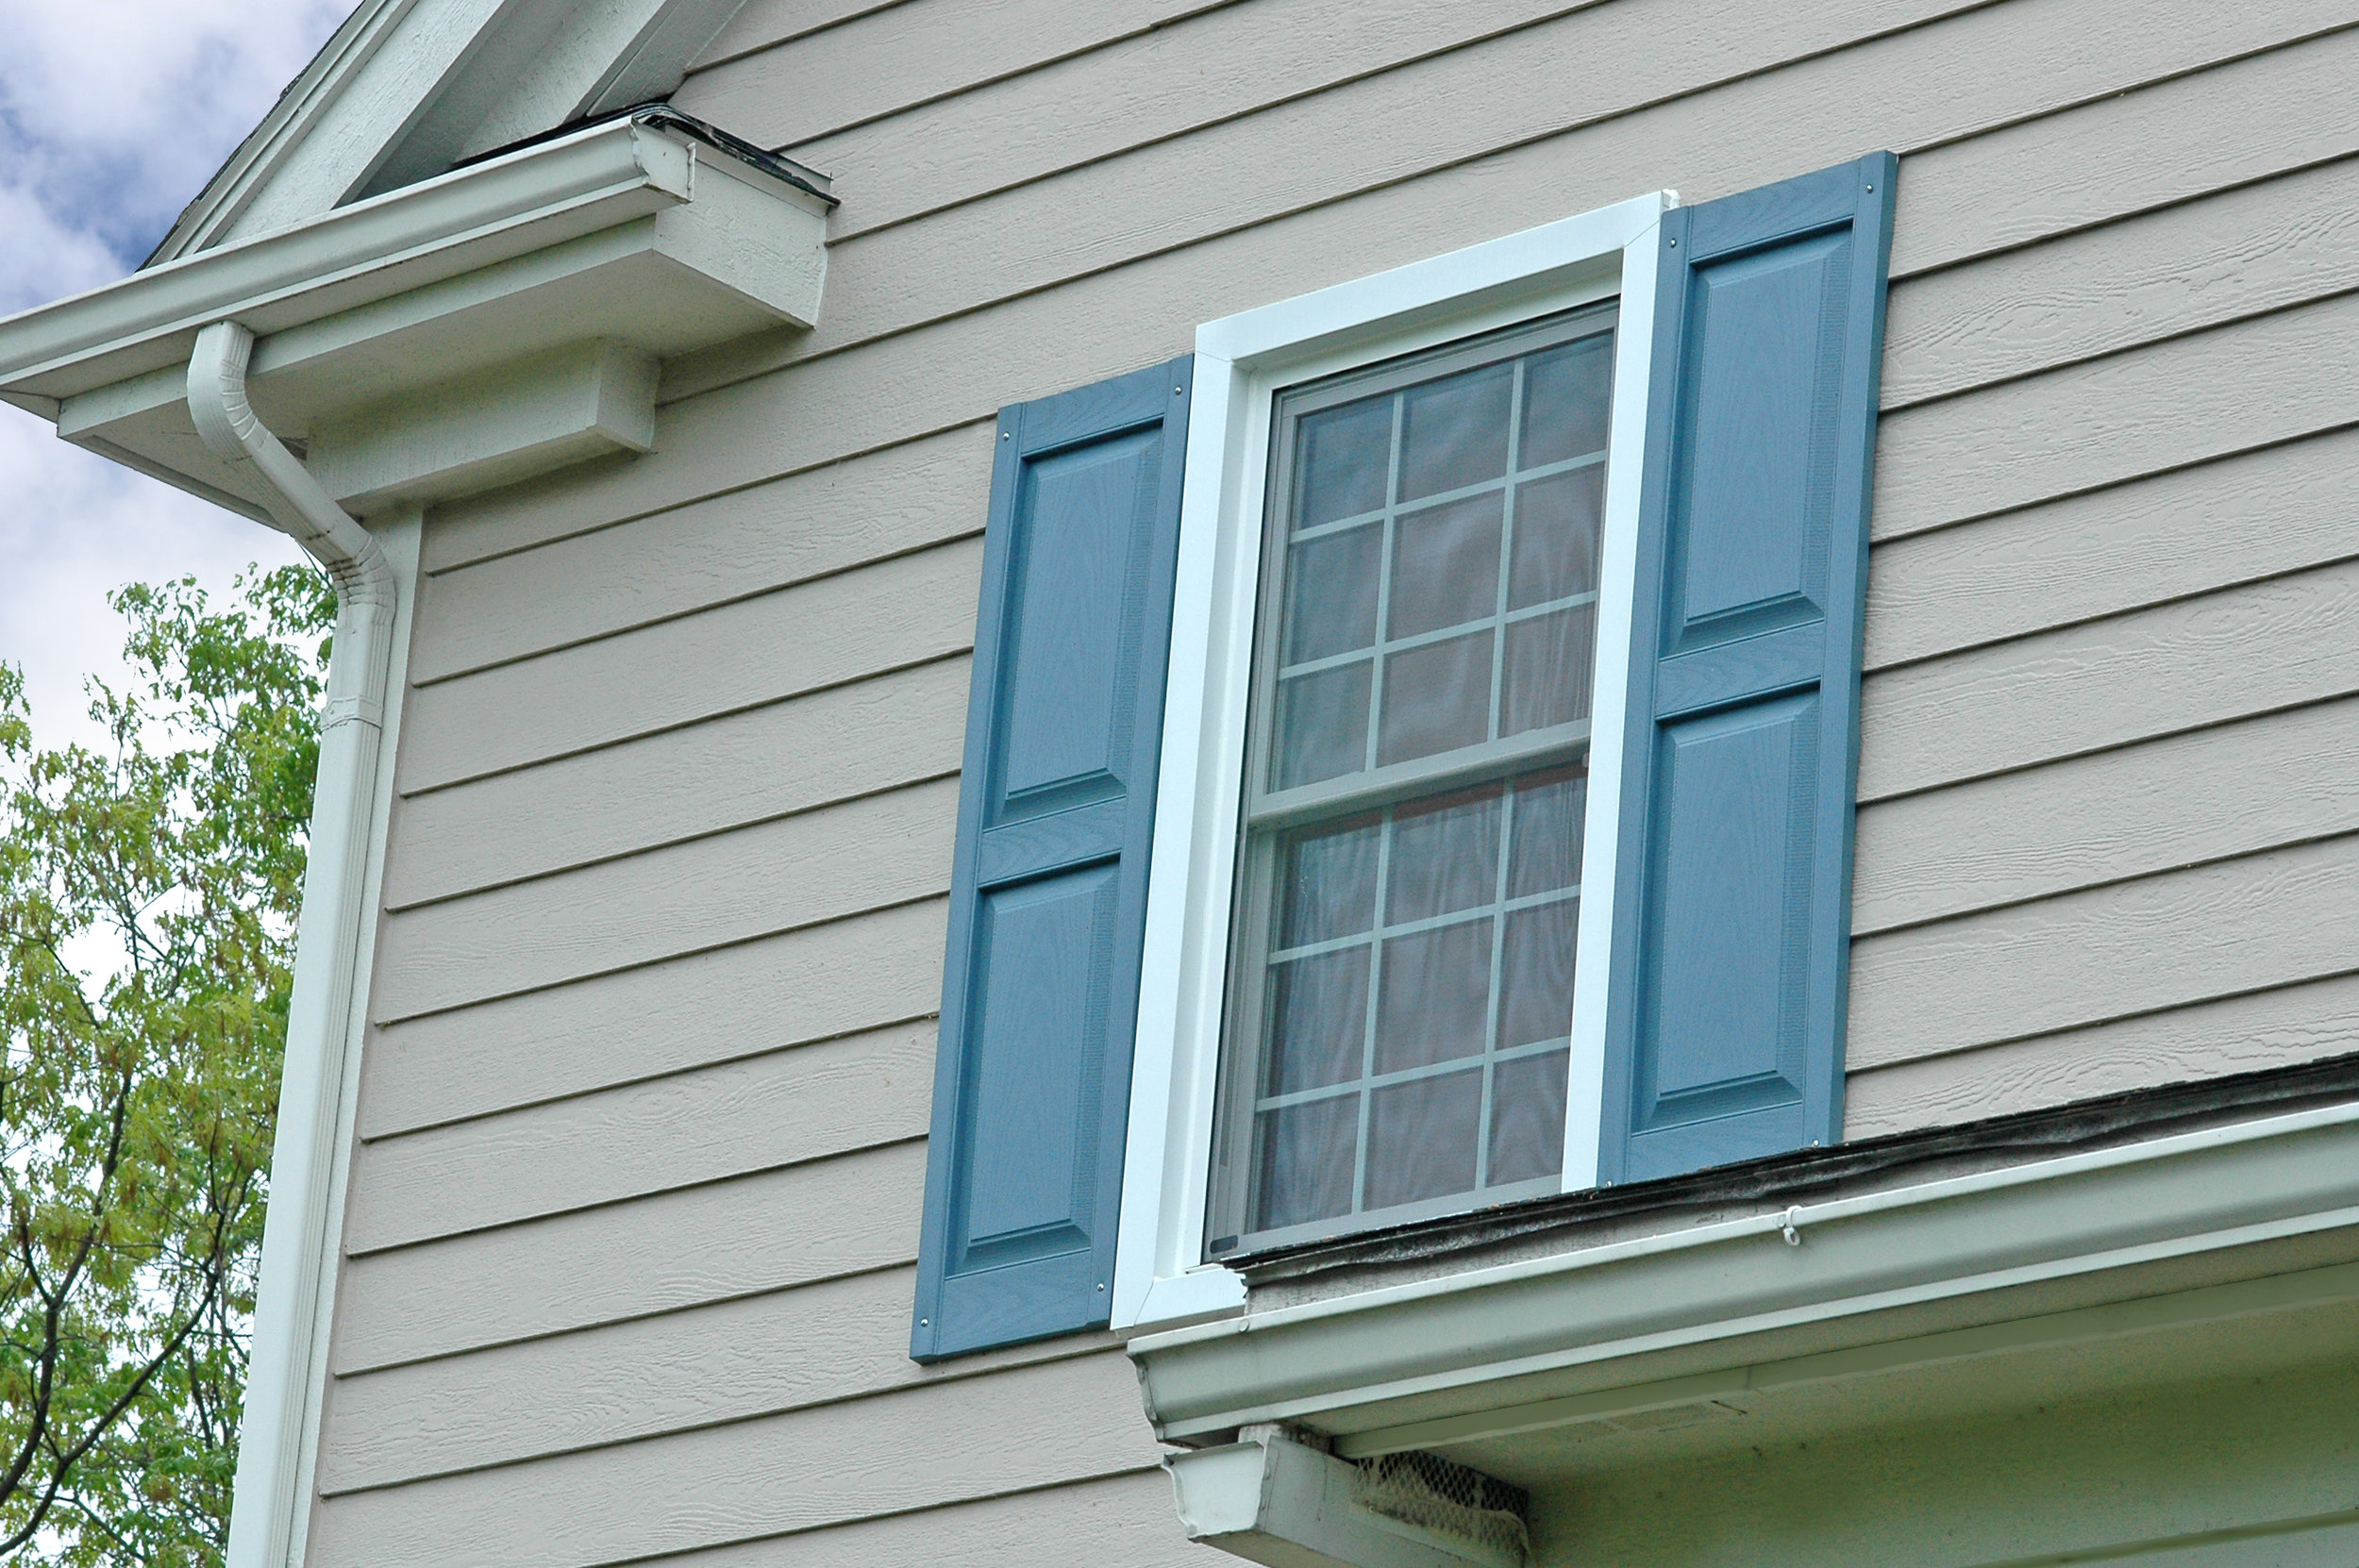 If you had to choose the most popular window style, what would it be?